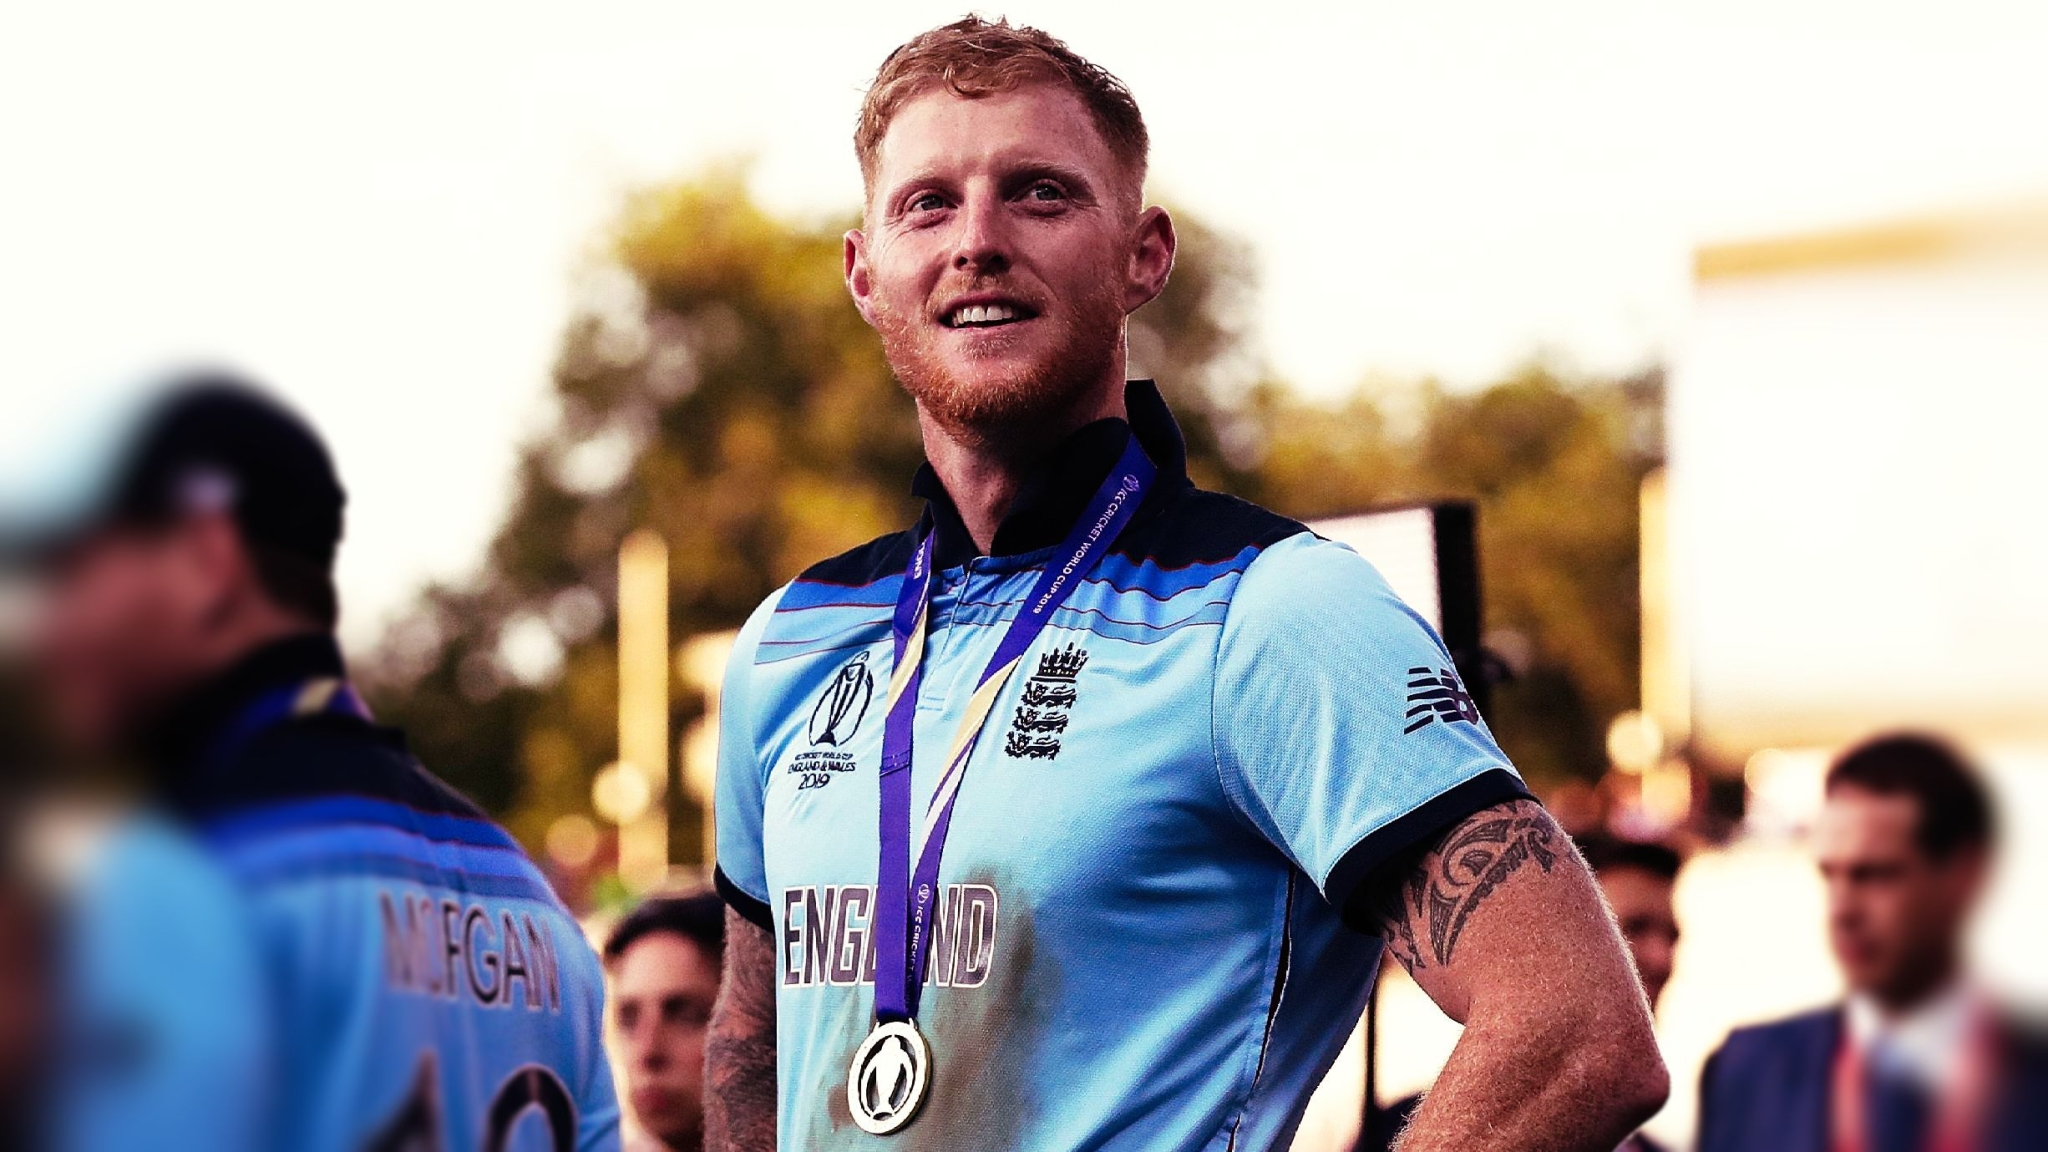 From Brawler to Superhuman, Ben Stokes' Life Has Come Full Circle